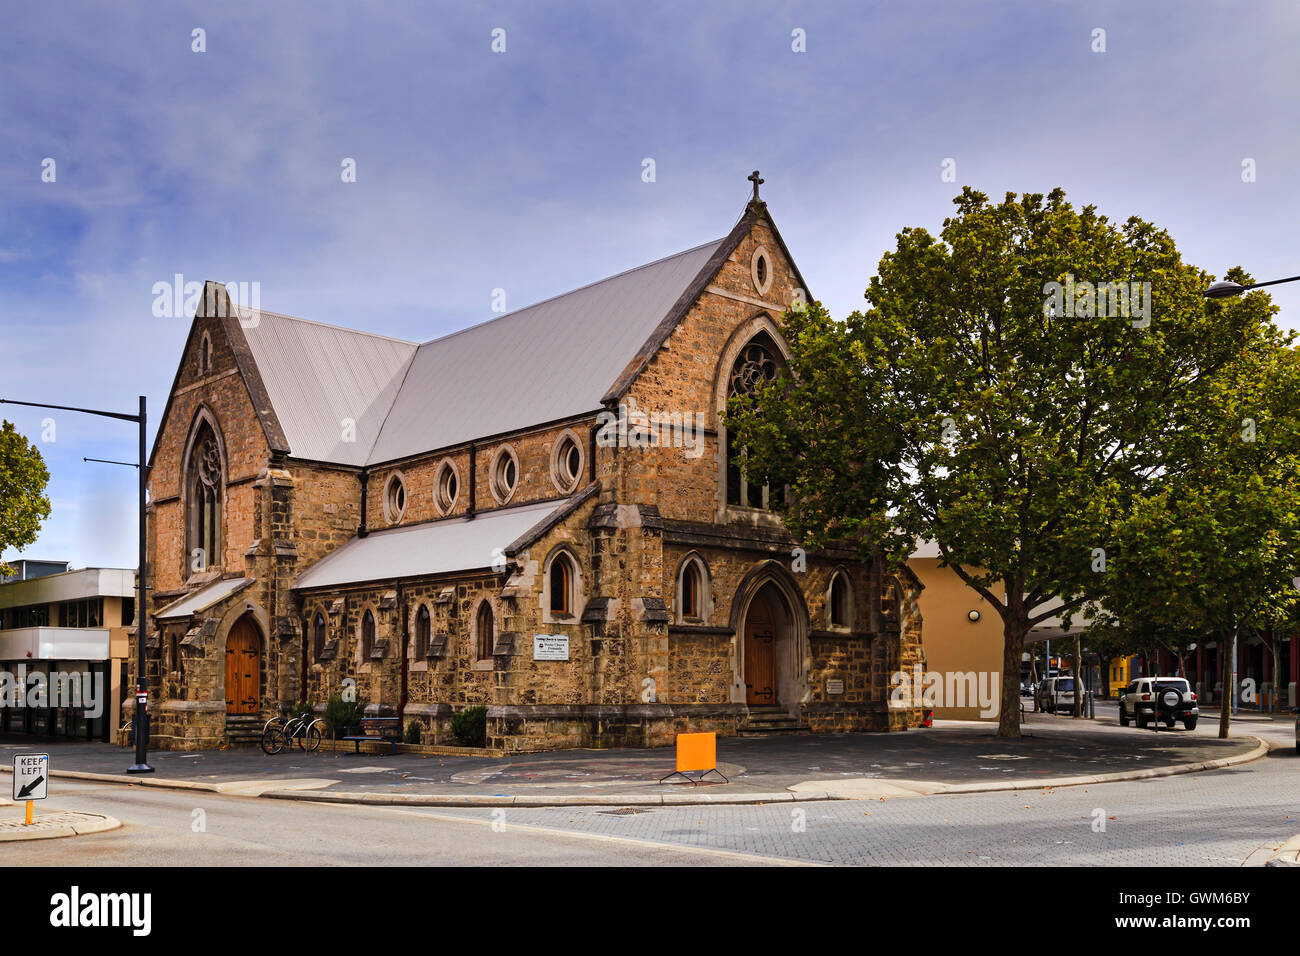 Uniting Church in Australia - historic catholic church in Fremantle town near Perth city, Western Australia. - Stock Image